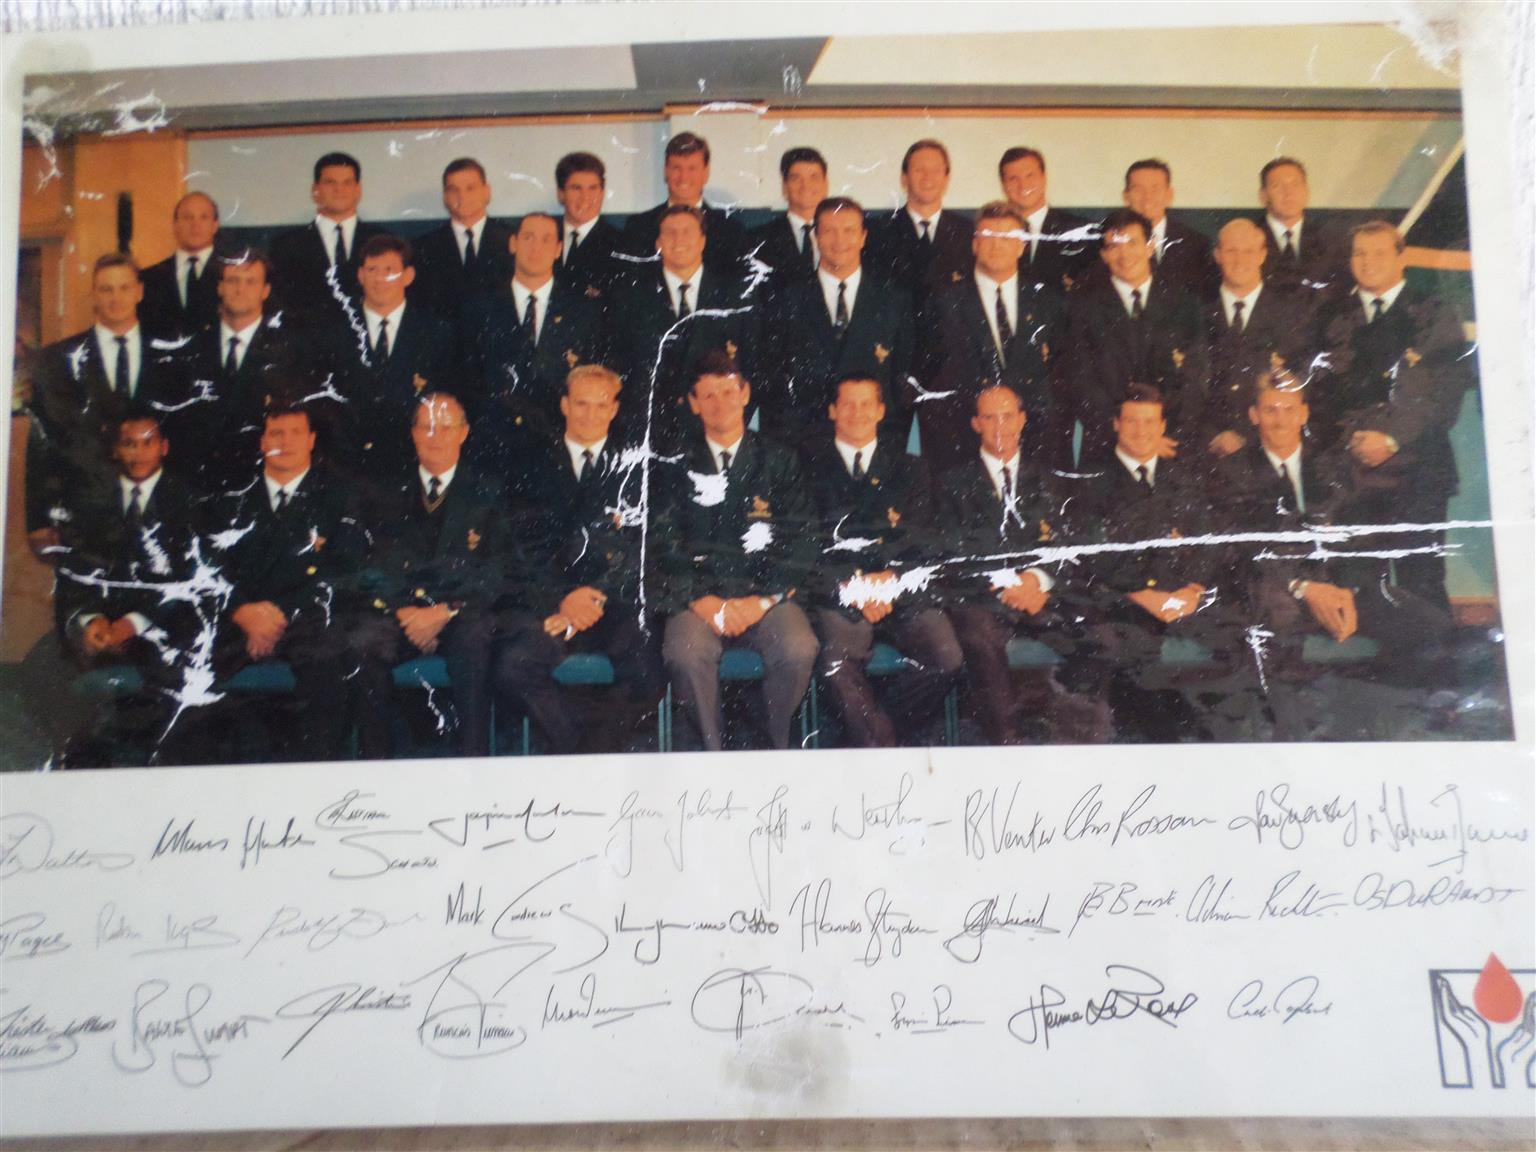 1995 RUGBY WORLD CUP  MEMORABILIA - 25 YEARS !!!